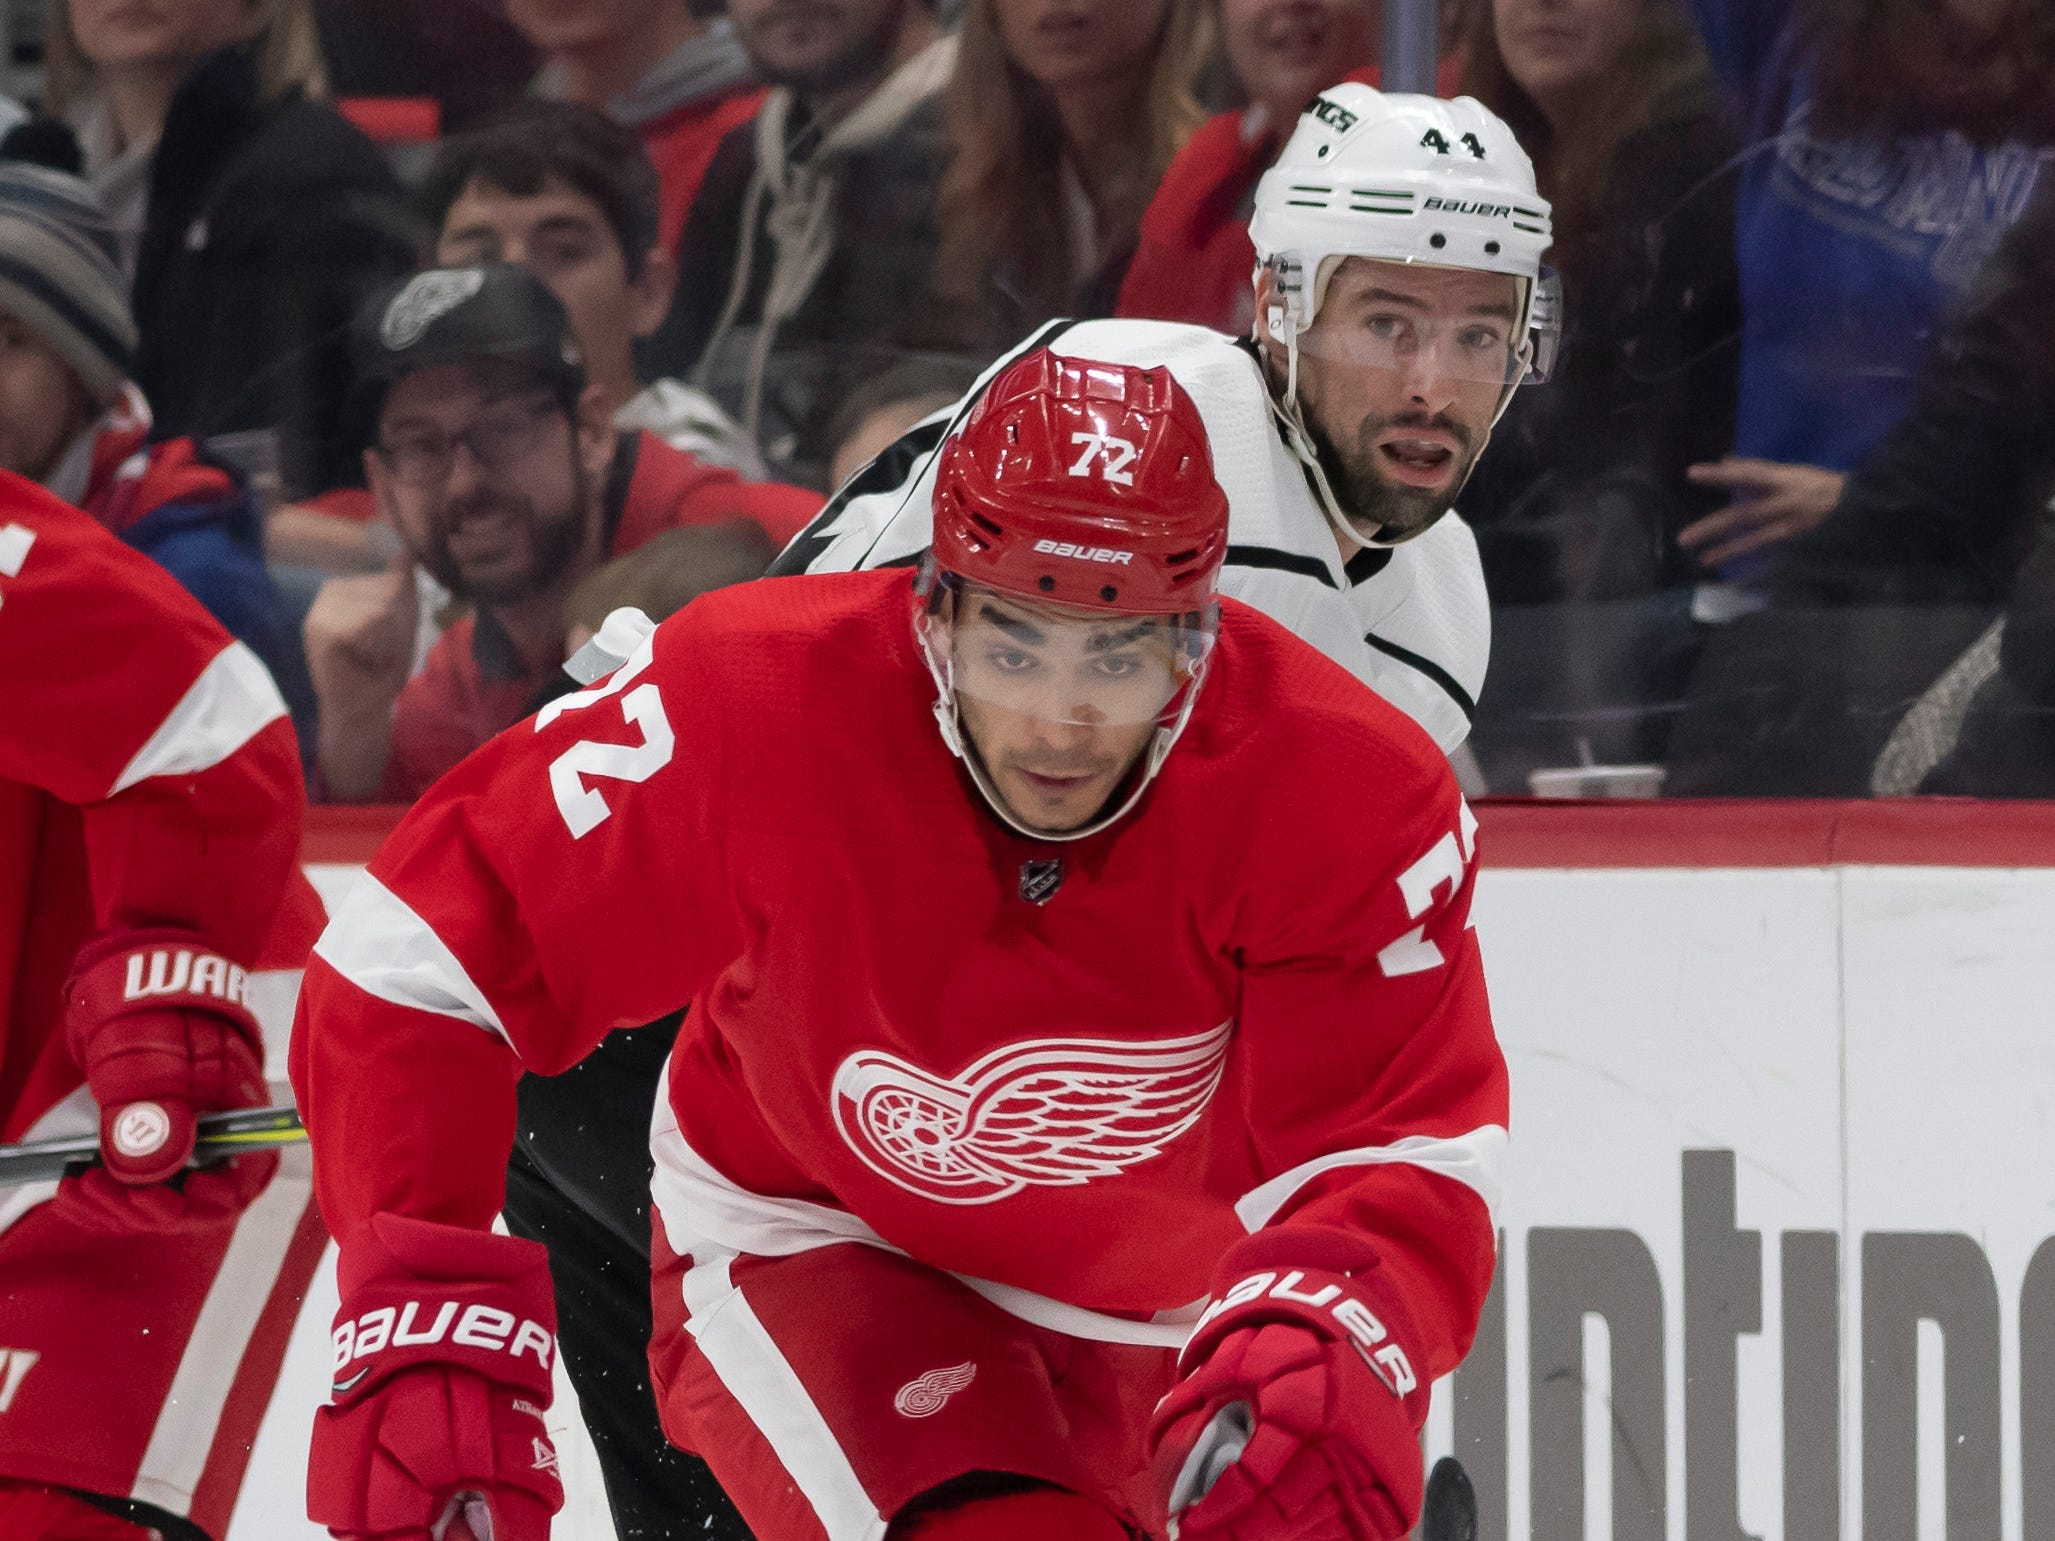 Detroit center Andreas Athanasiou moves the puck away from Los Angeles center Nate Thompson in the first period.